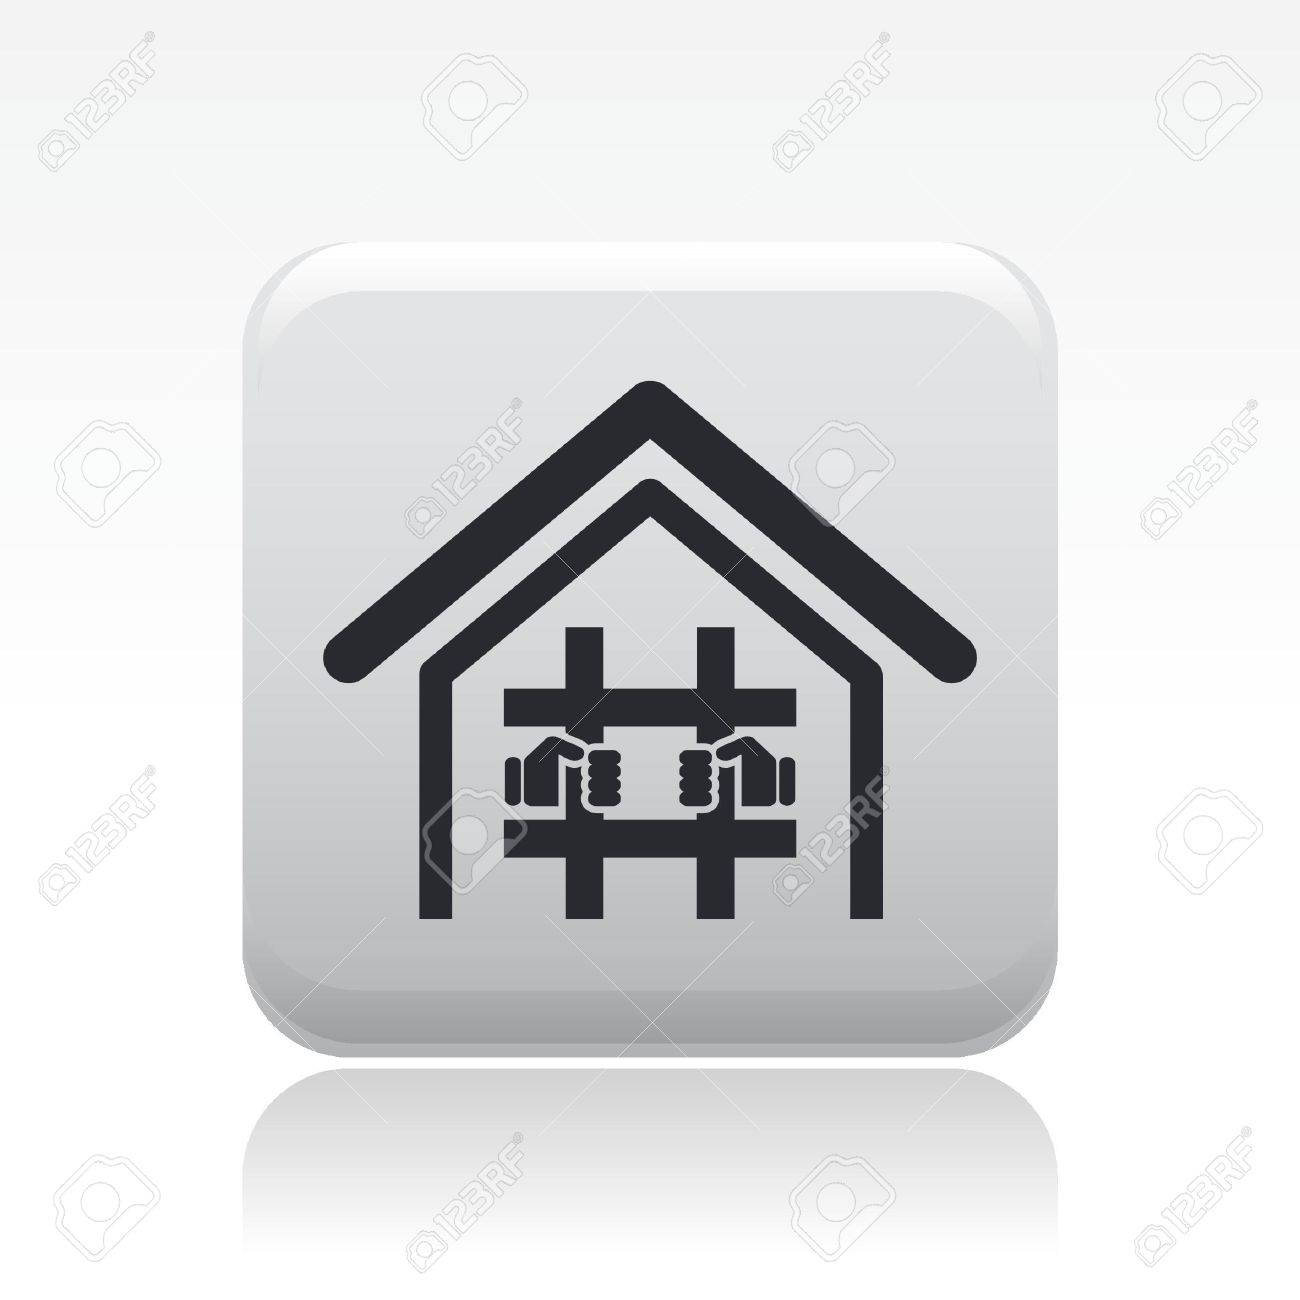 Vector illustration of single isolated prison icon Stock Vector - 12119776